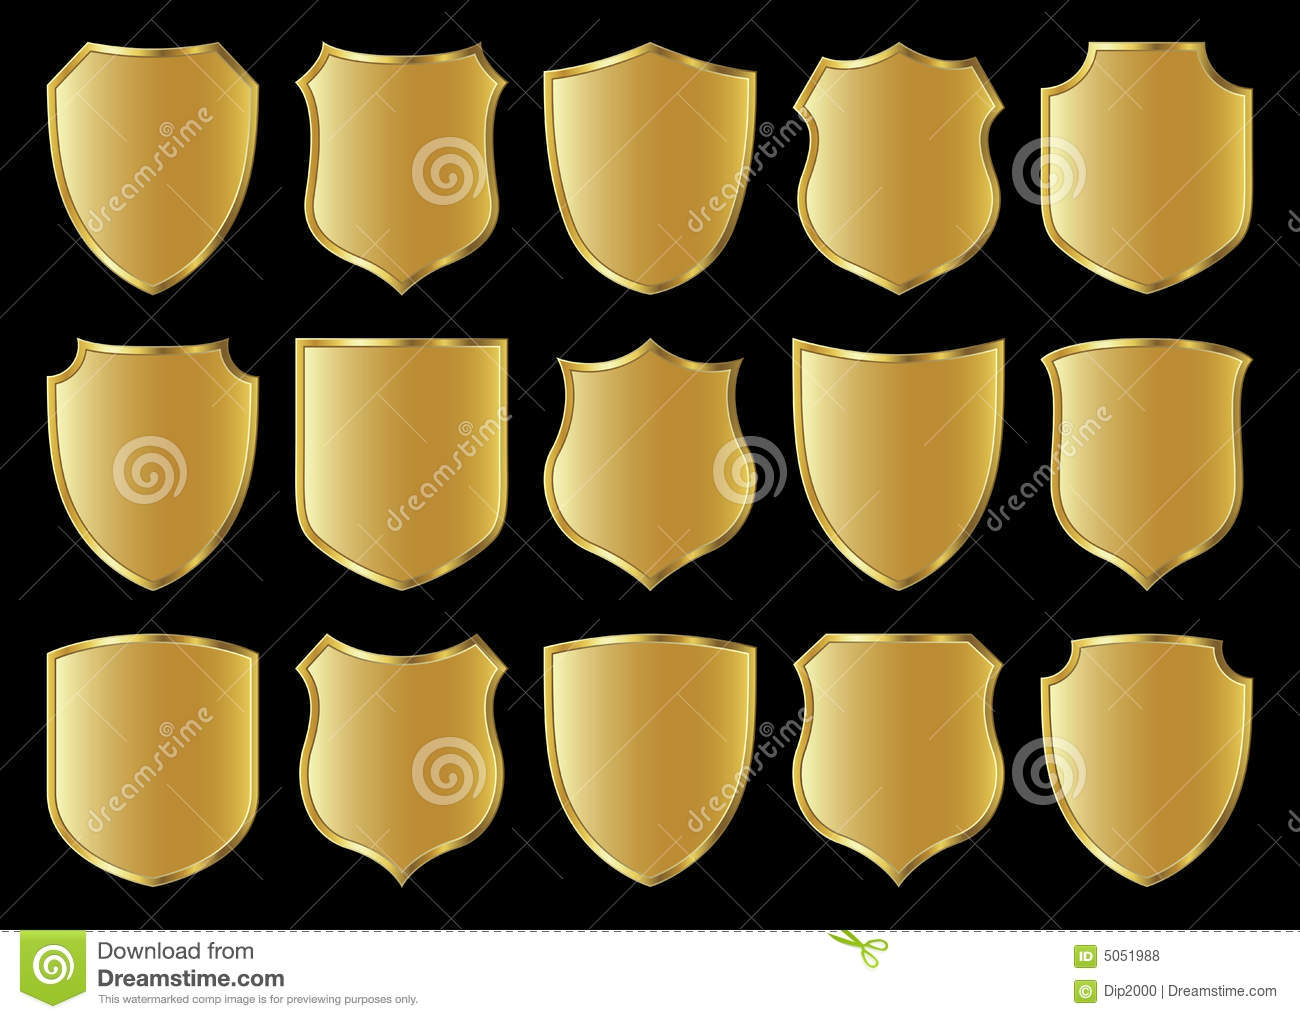 Royalty free stock photo design golden set shield